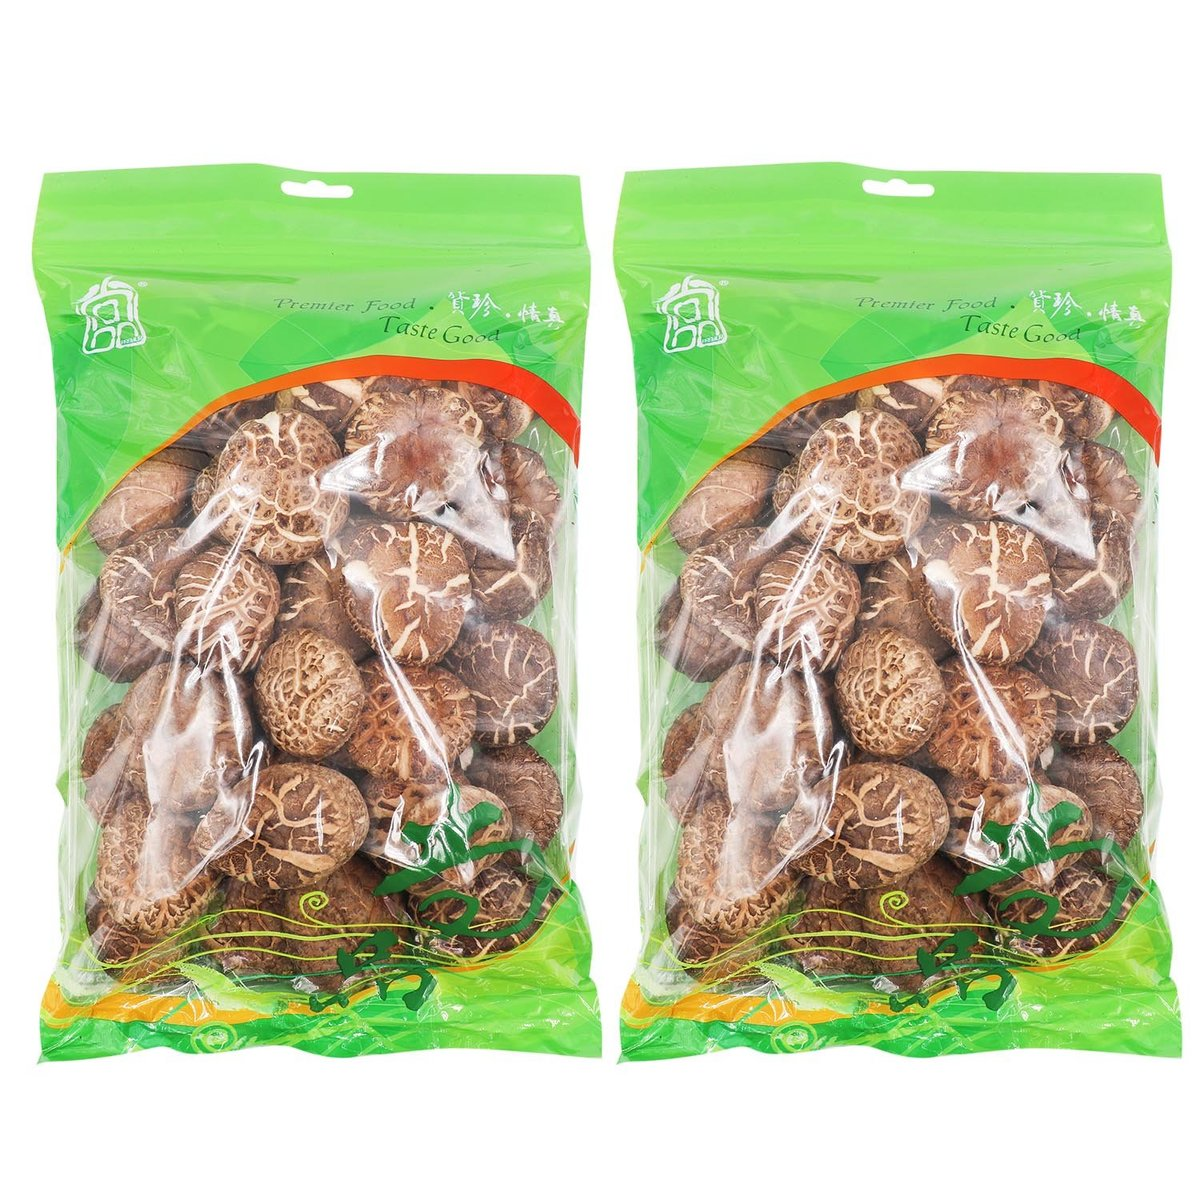 Dried Shiitake Mushroom(China)(350g) x2pc